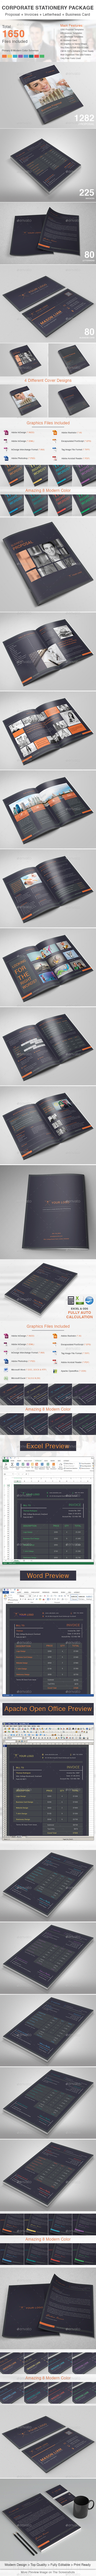 Corporate Stationery Package - Proposals & Invoices Stationery